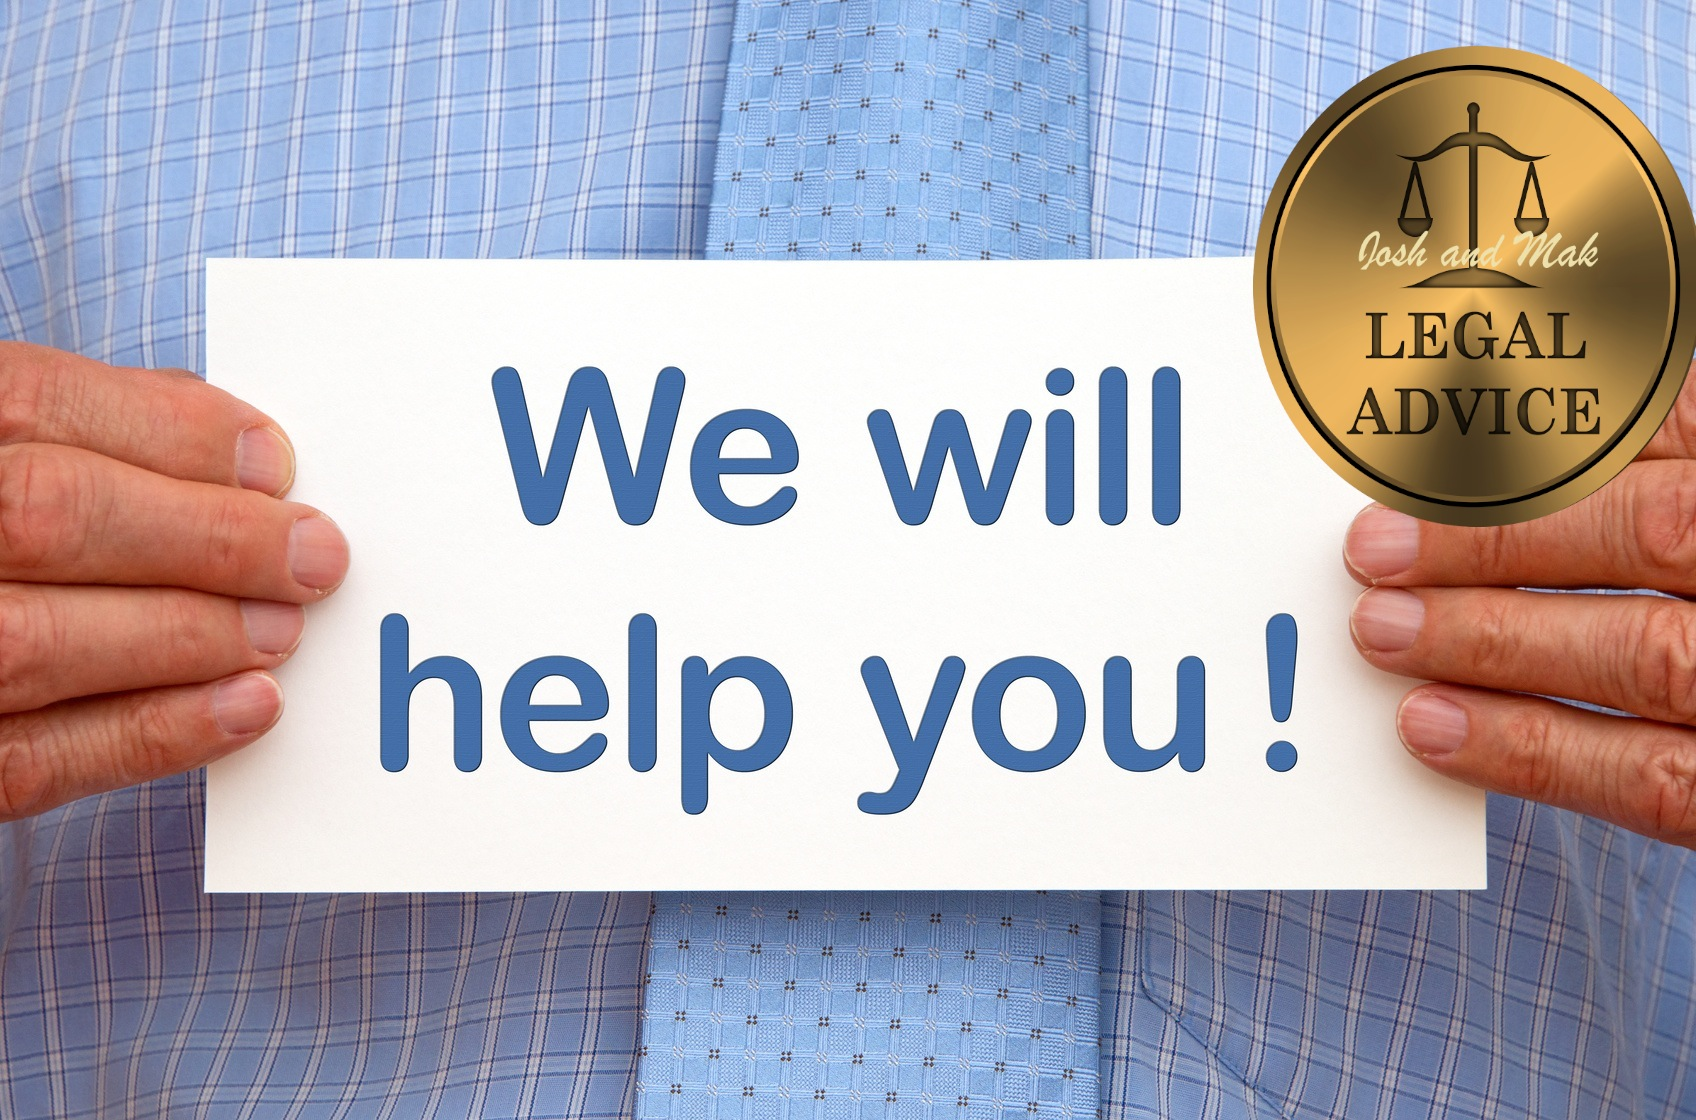 We will help you !